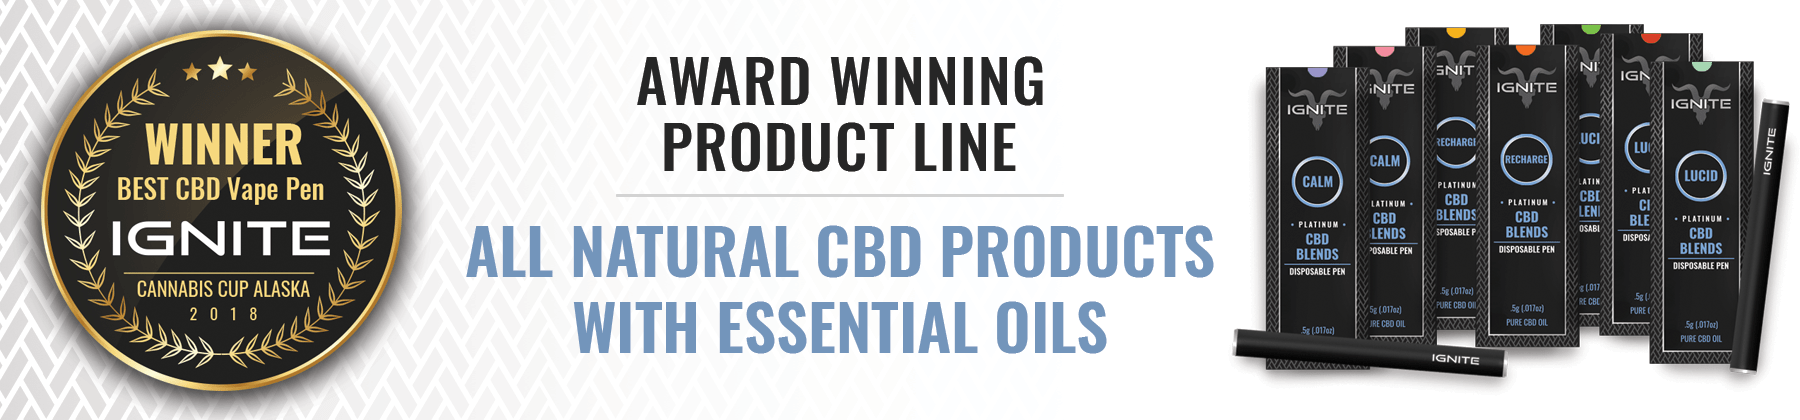 Award winning product line. All natural CBD products with essential oils.